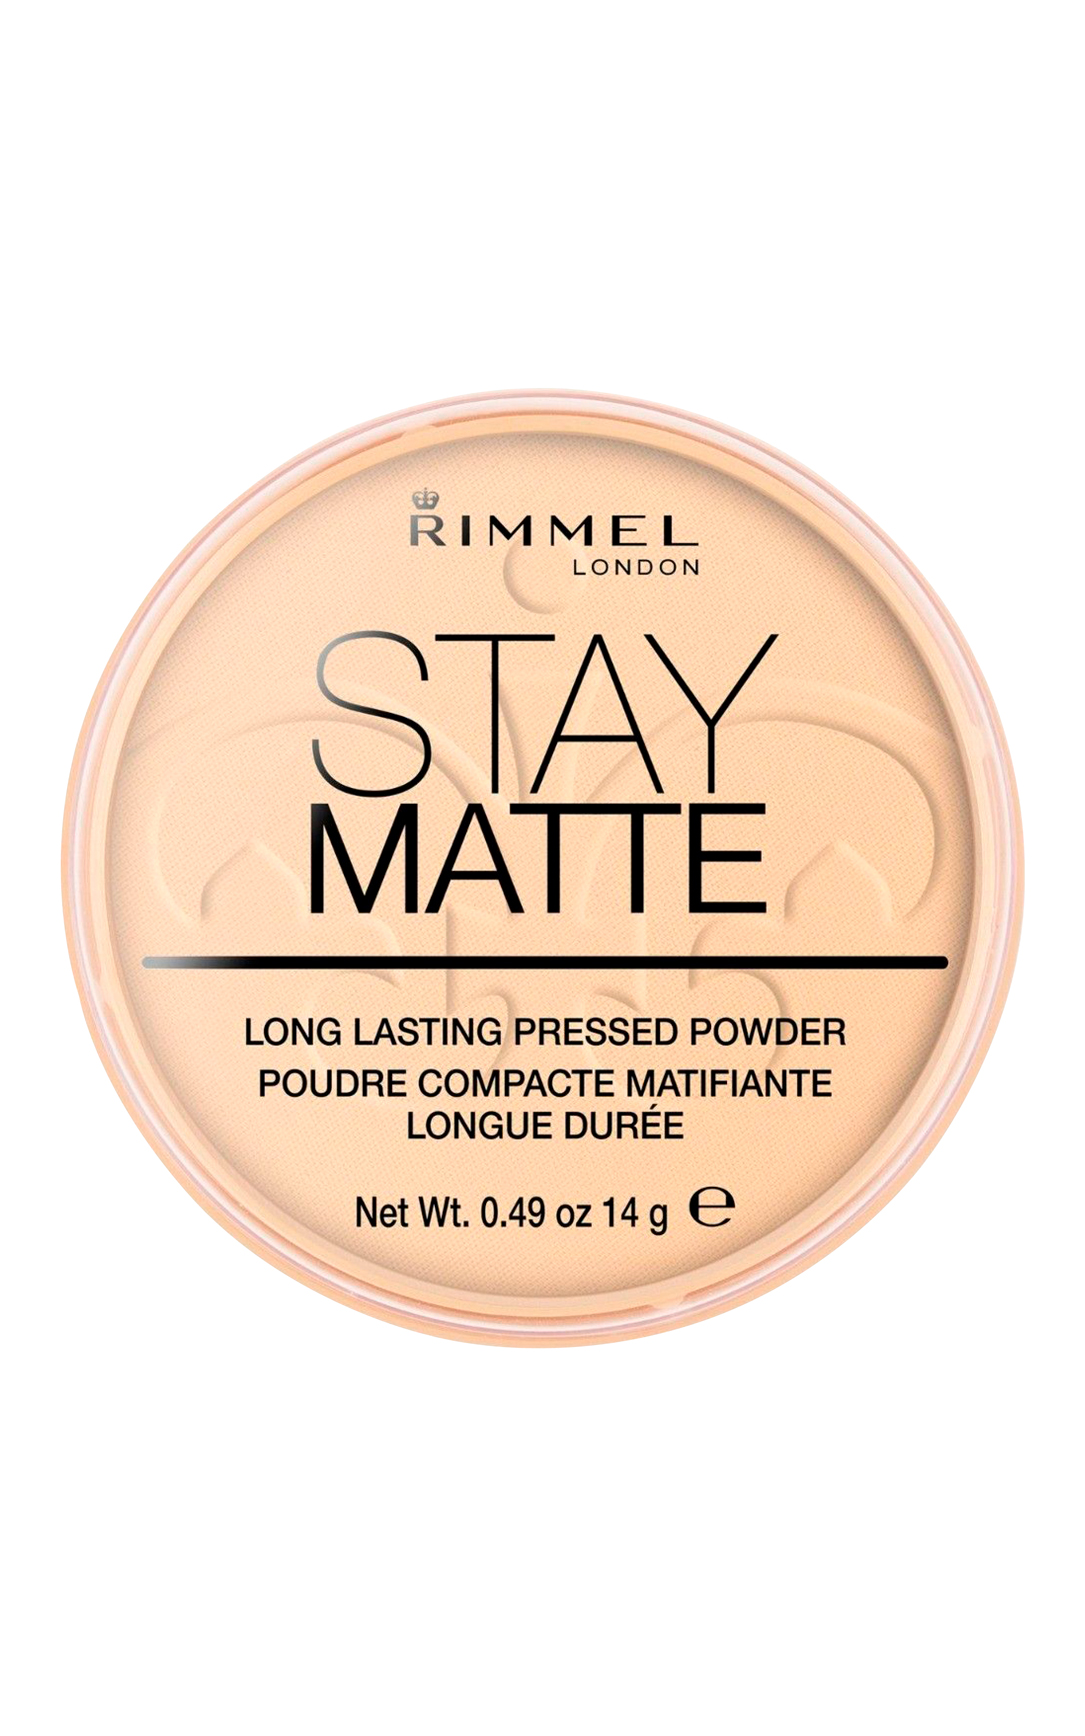 RIMMEL Stay Matte pudry 14 g